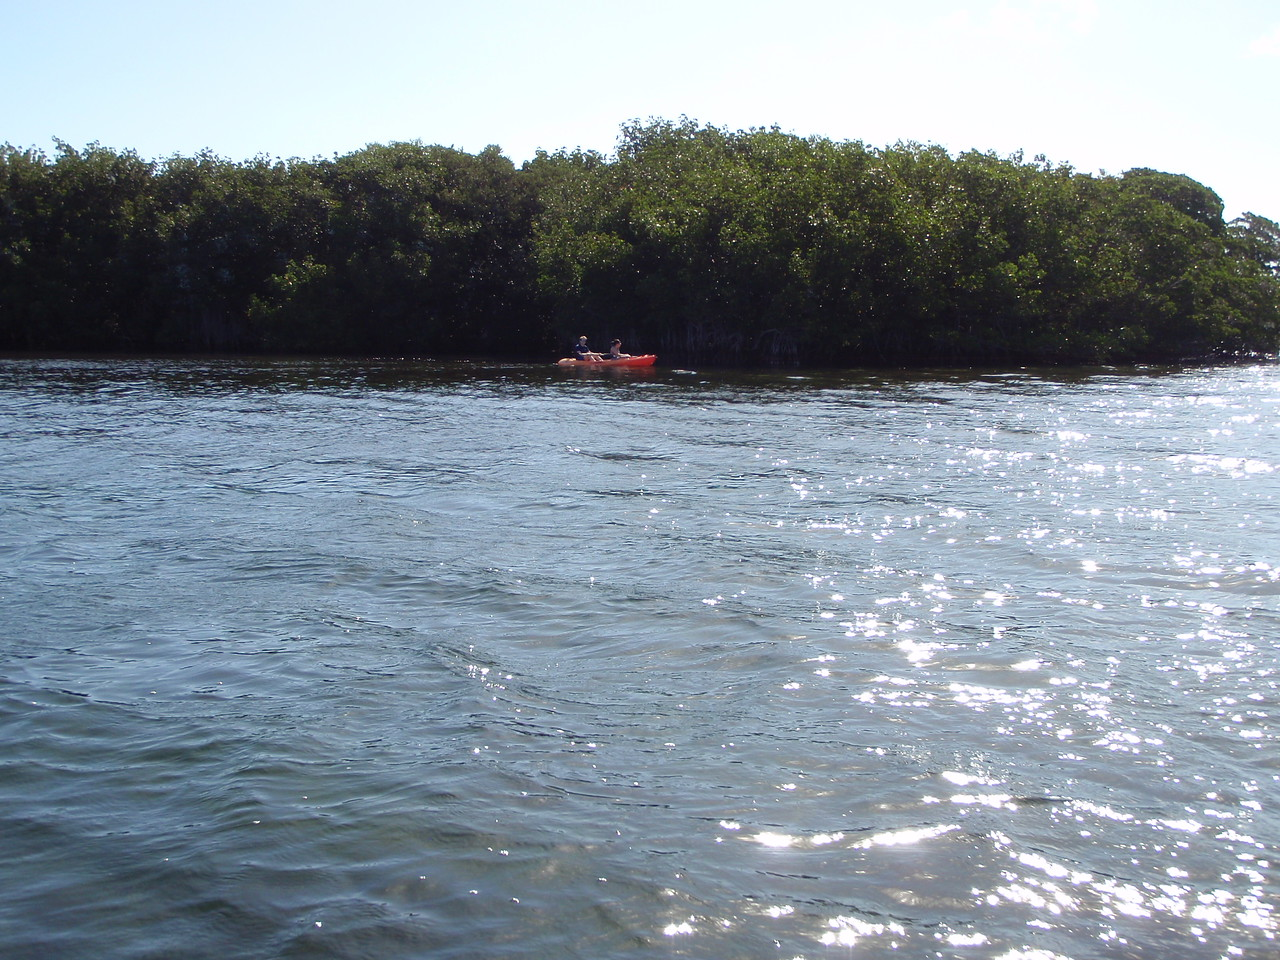 Next up was Pelican Key - a small mangrove covered island